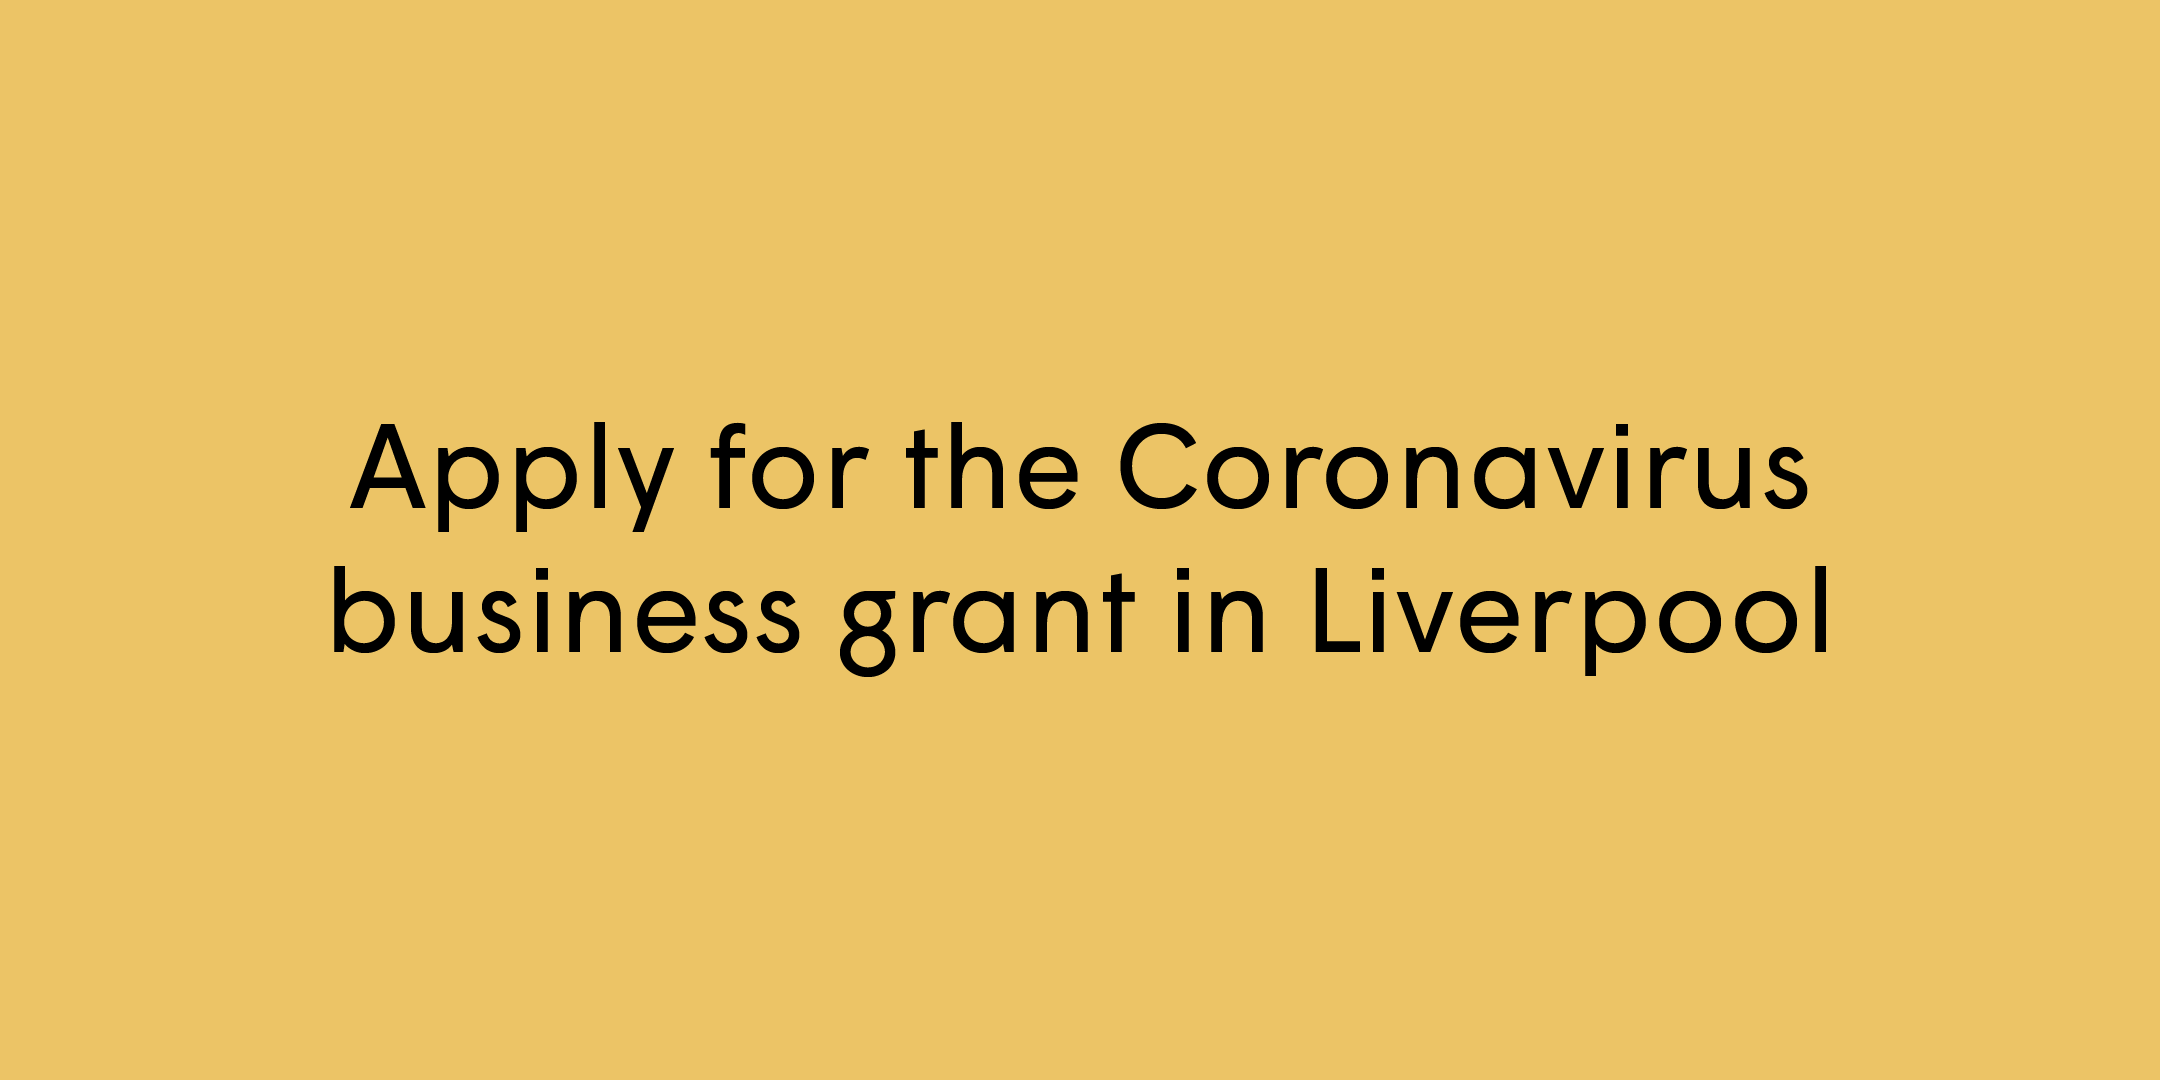 Apply for the Coronavirus business grant in Liverpool